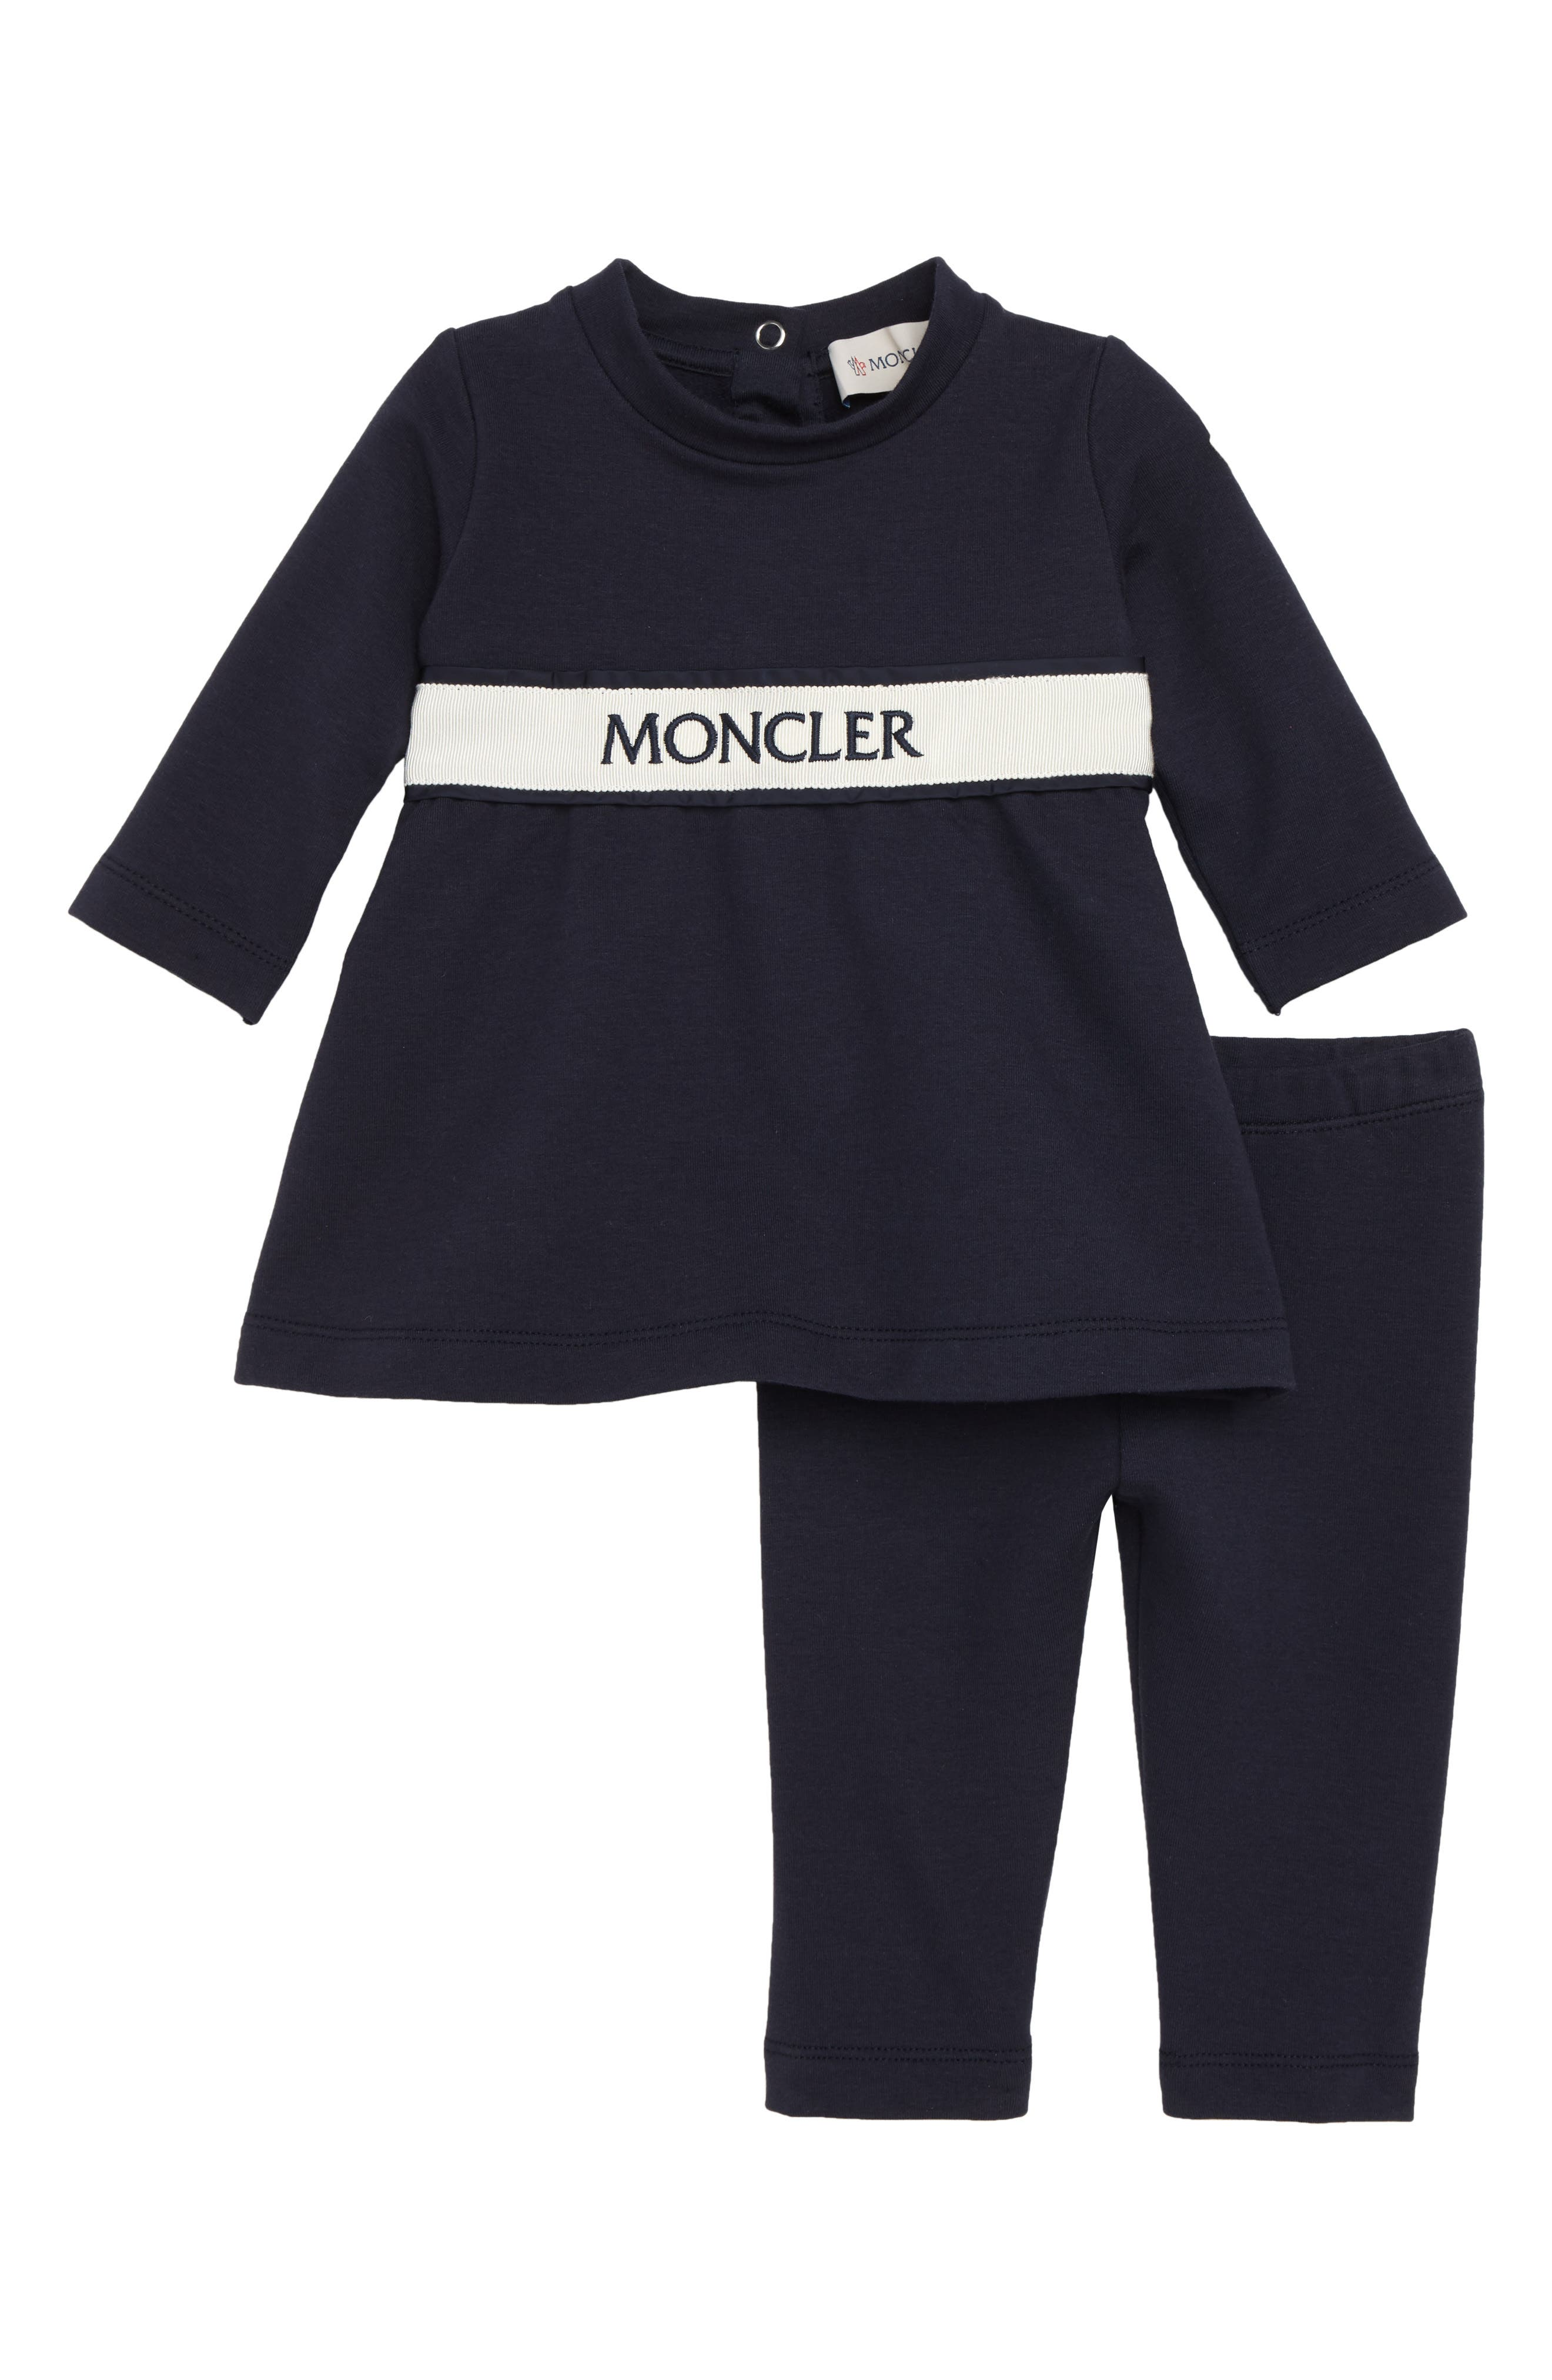 MONCLER Dress & Leggings Set, Main, color, NAVY